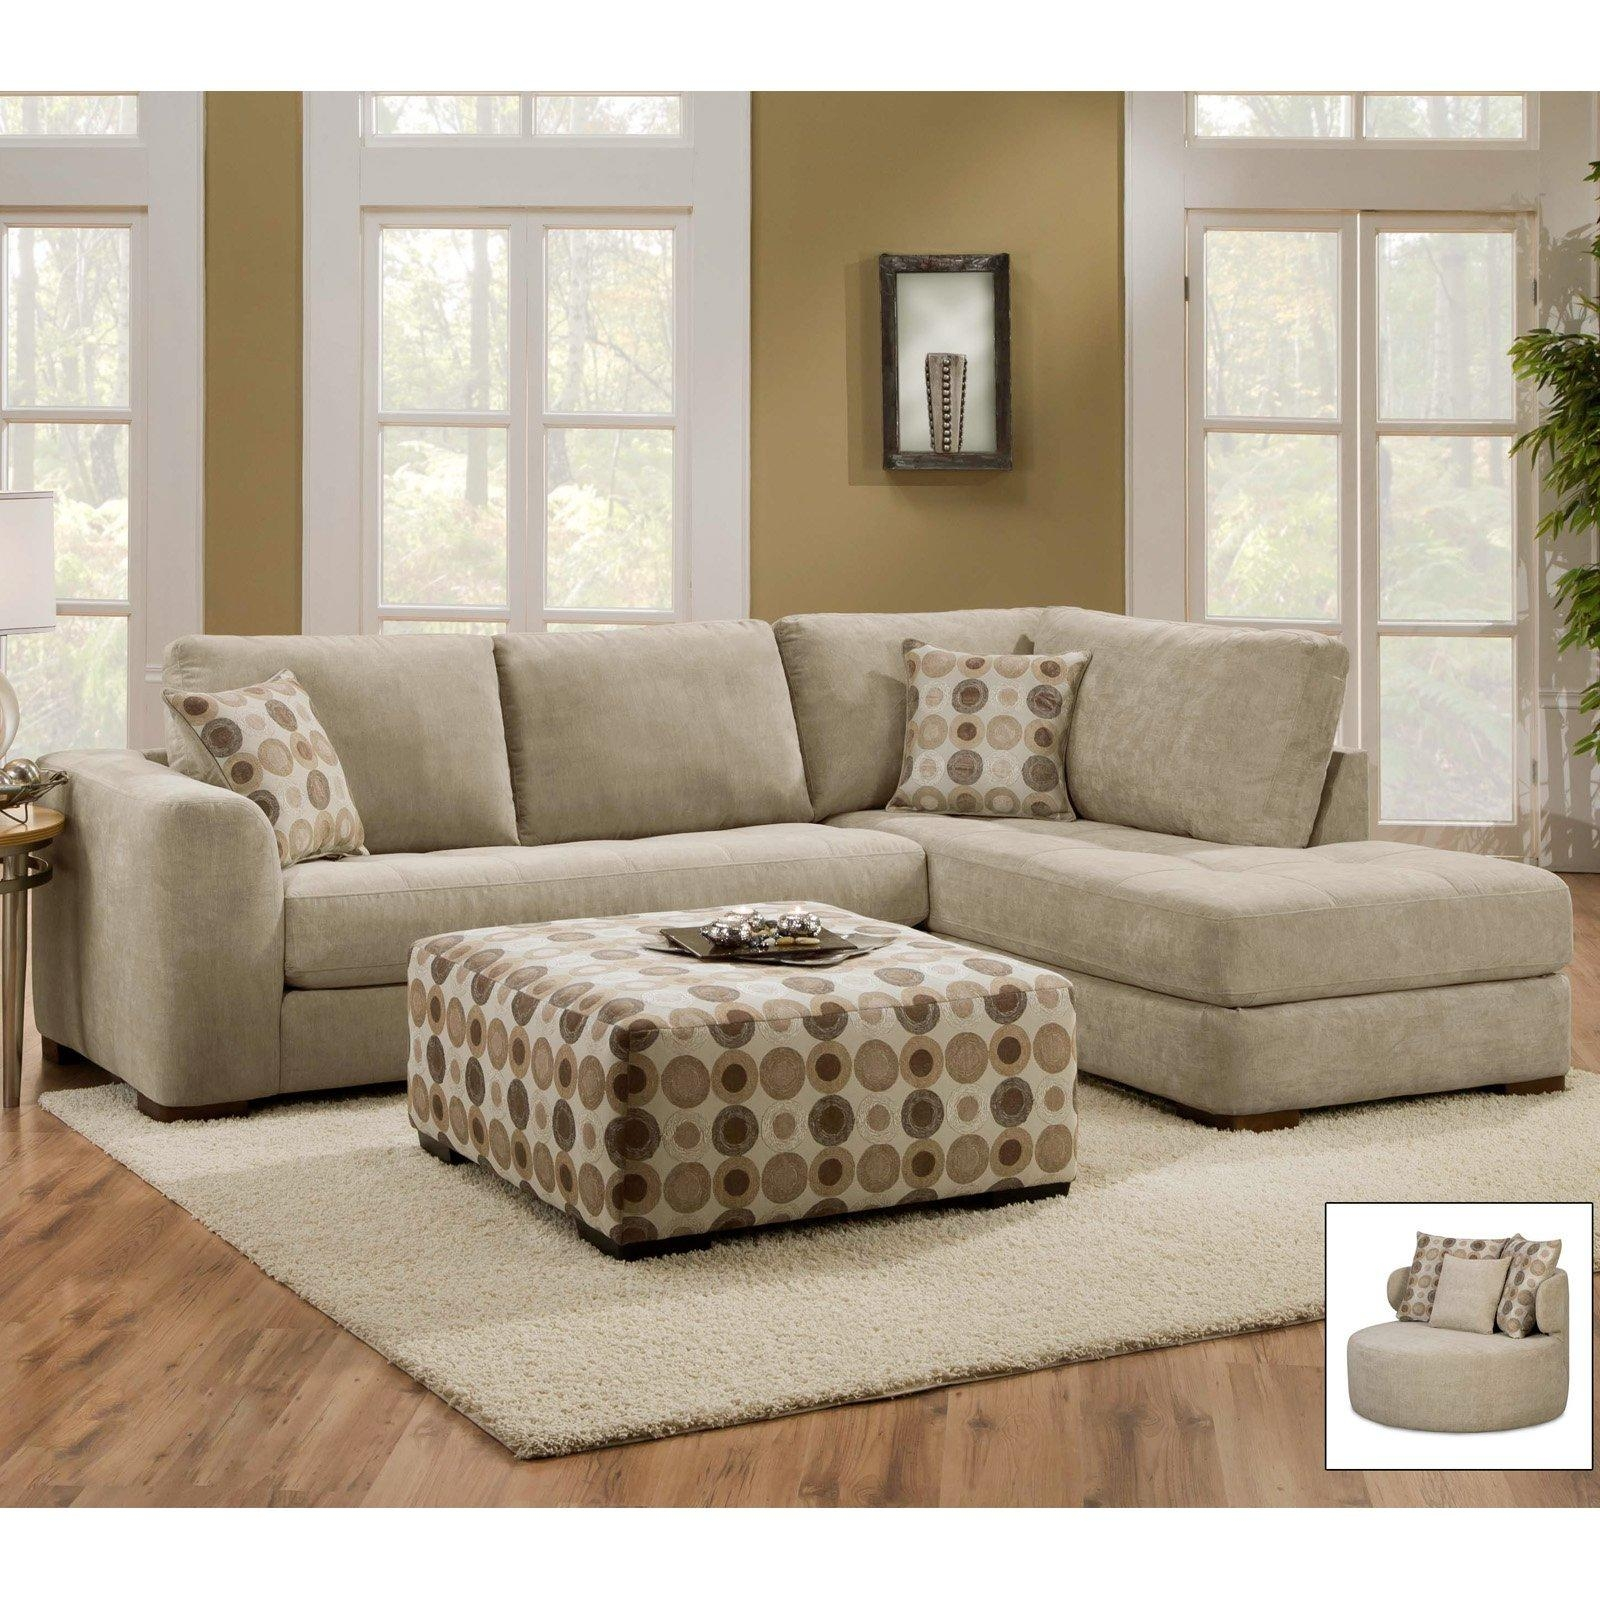 Amazing 2 Piece Sectional Sofa 80 About Remodel Sofas And Couches Within Small 2 Piece Sectional Sofas (View 15 of 23)